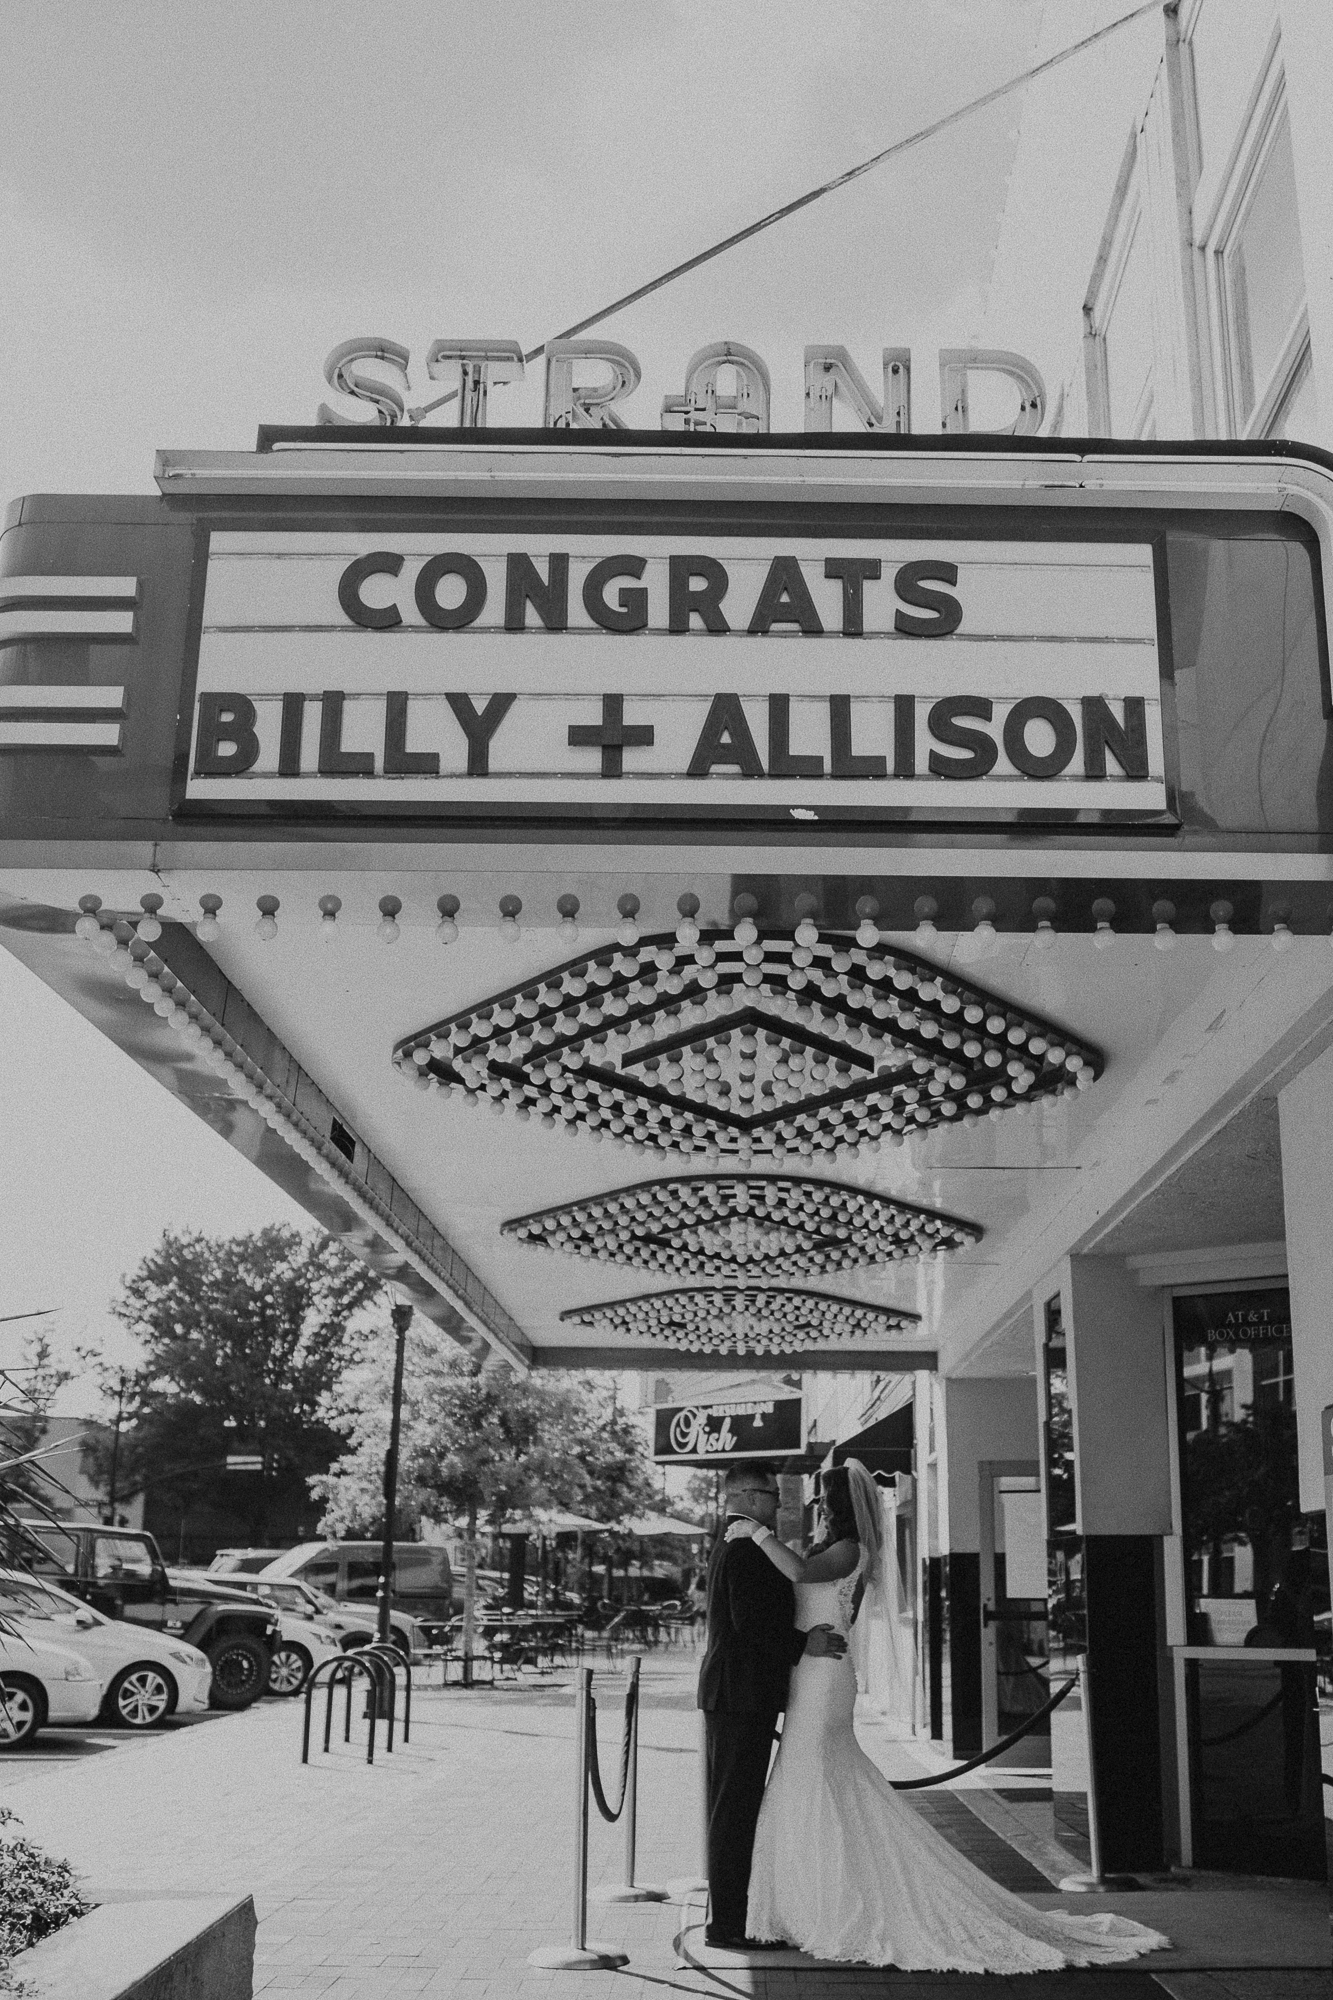 Allison and Billy - earlsmithstrand_marietta square georgia wedding photography-38.JPG